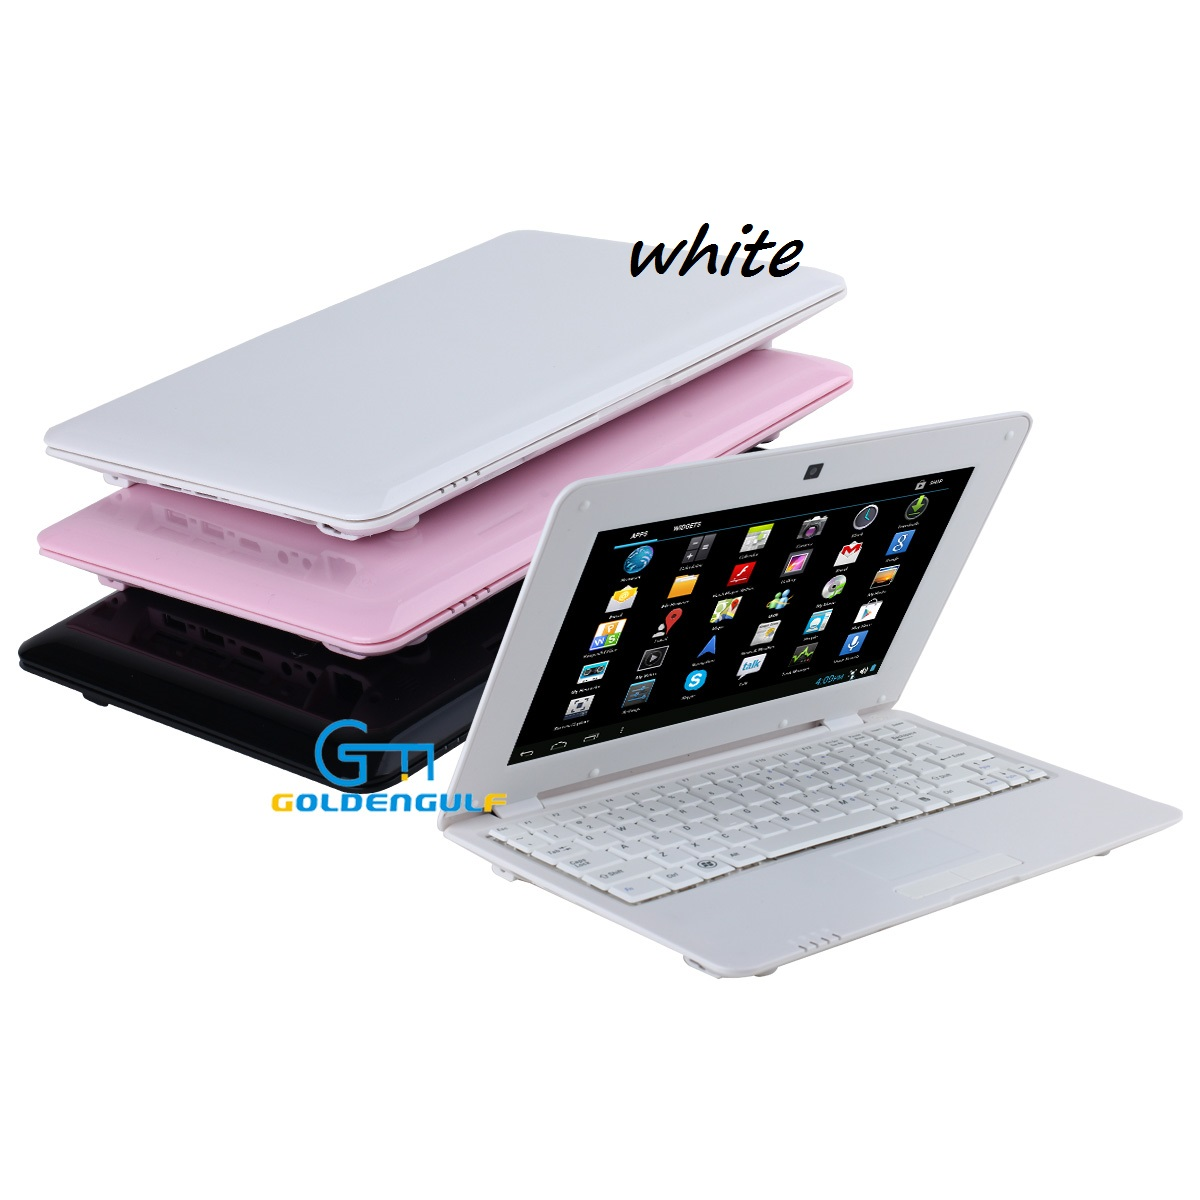 Details about 10 Inch White Mini Laptop Netbook Android Computer PC with  WIFI Mouse Camera